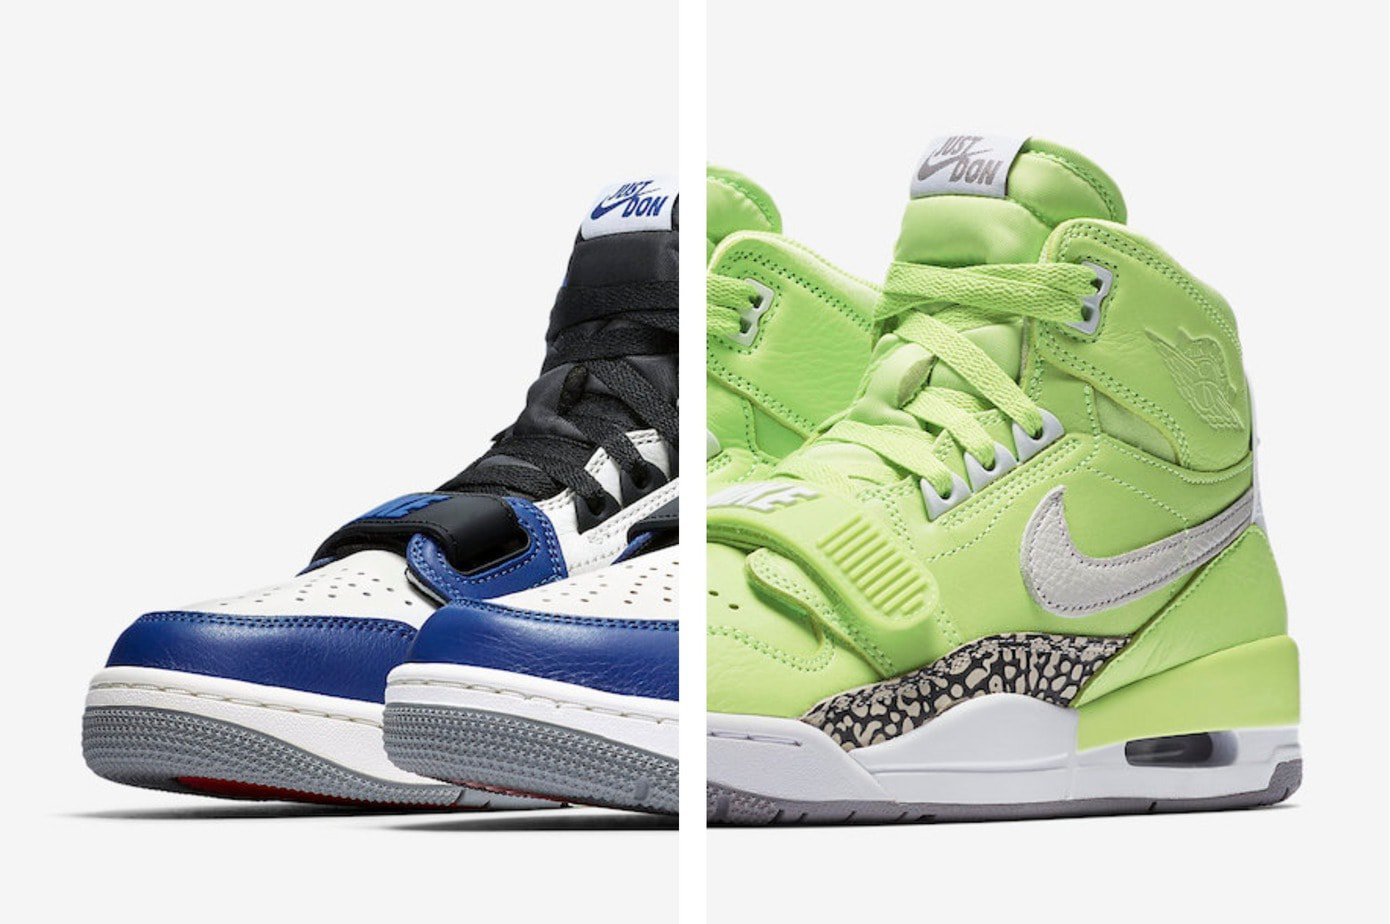 huge discount c09b6 ddc88 Don C and Jordan Brand s funky new hybrid sneaker has been making waves on  the internet the last few months. Now, the shoe is finally ready for  release next ...